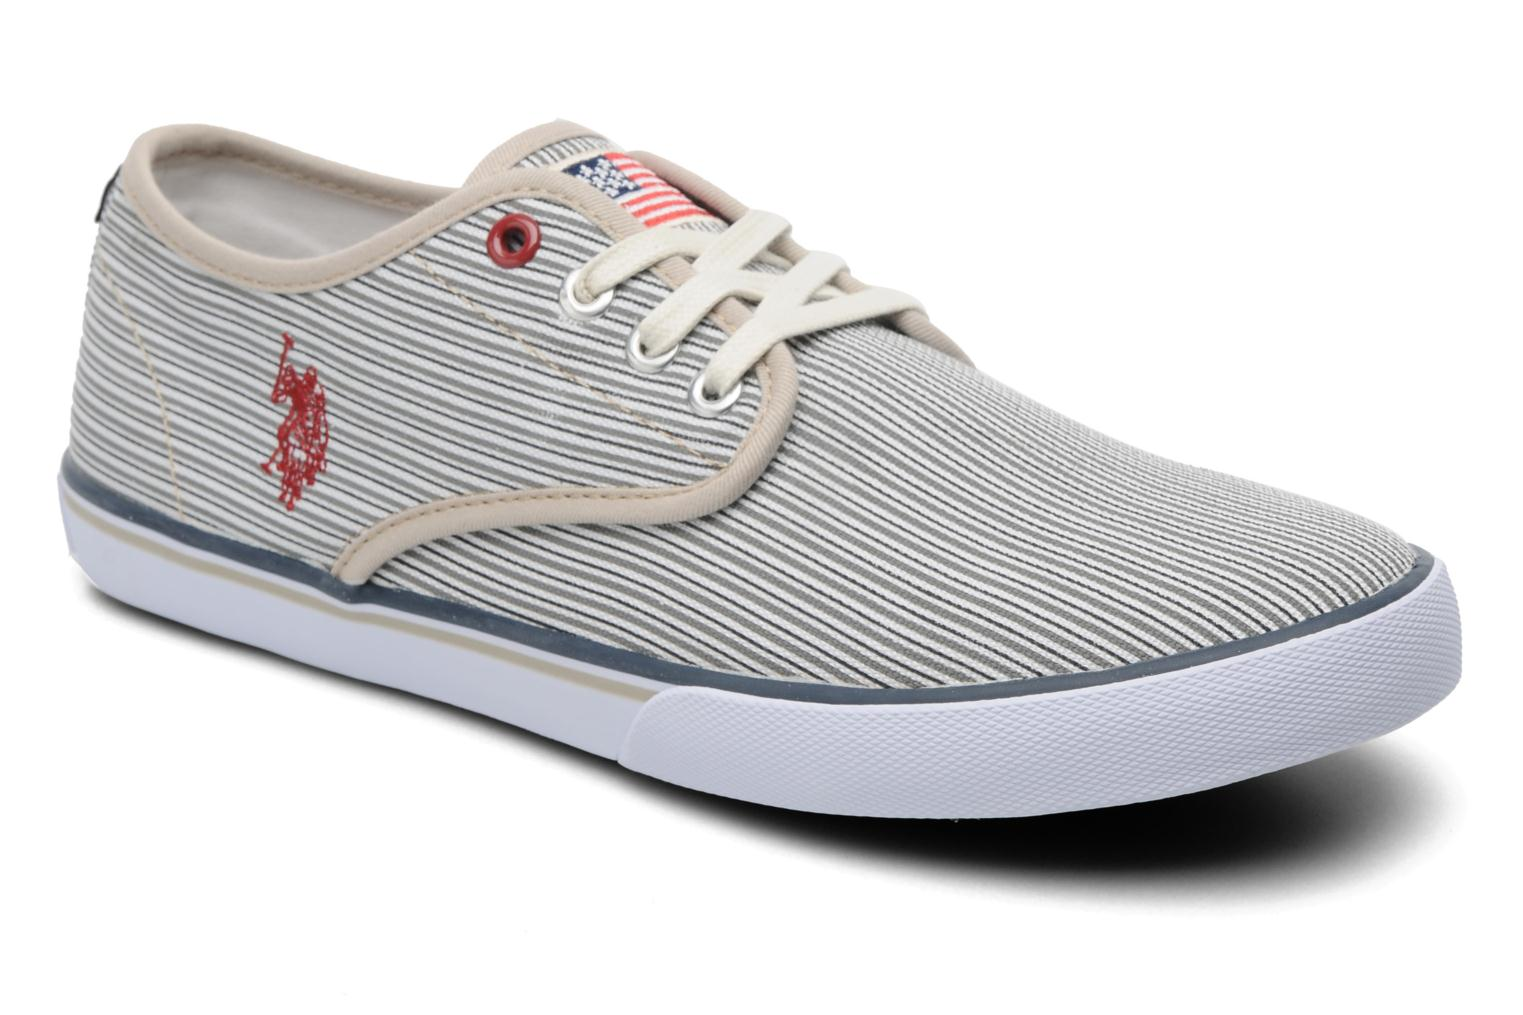 Sneakers Hugh Stripes by U.S Polo Assn.